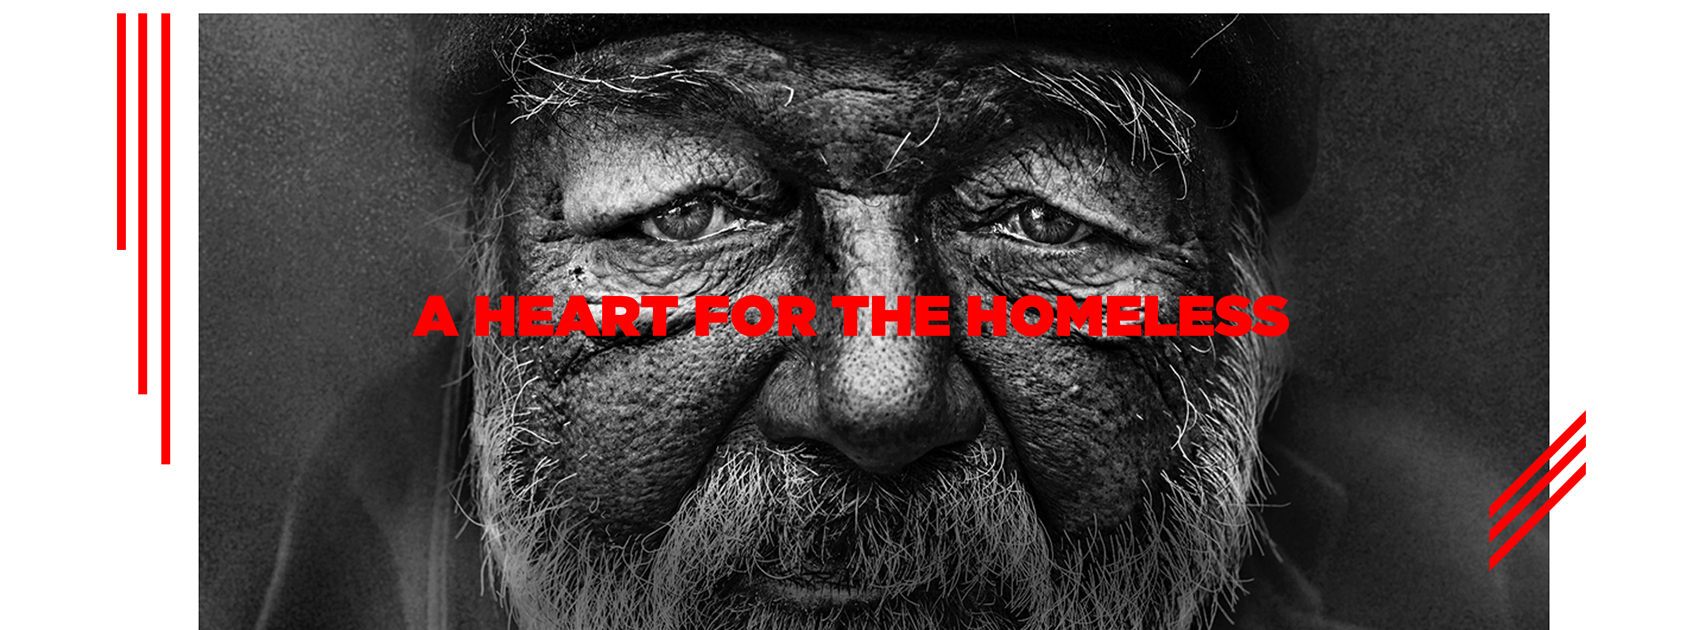 A Heart for the Homeless FB Cover Photo.jpg